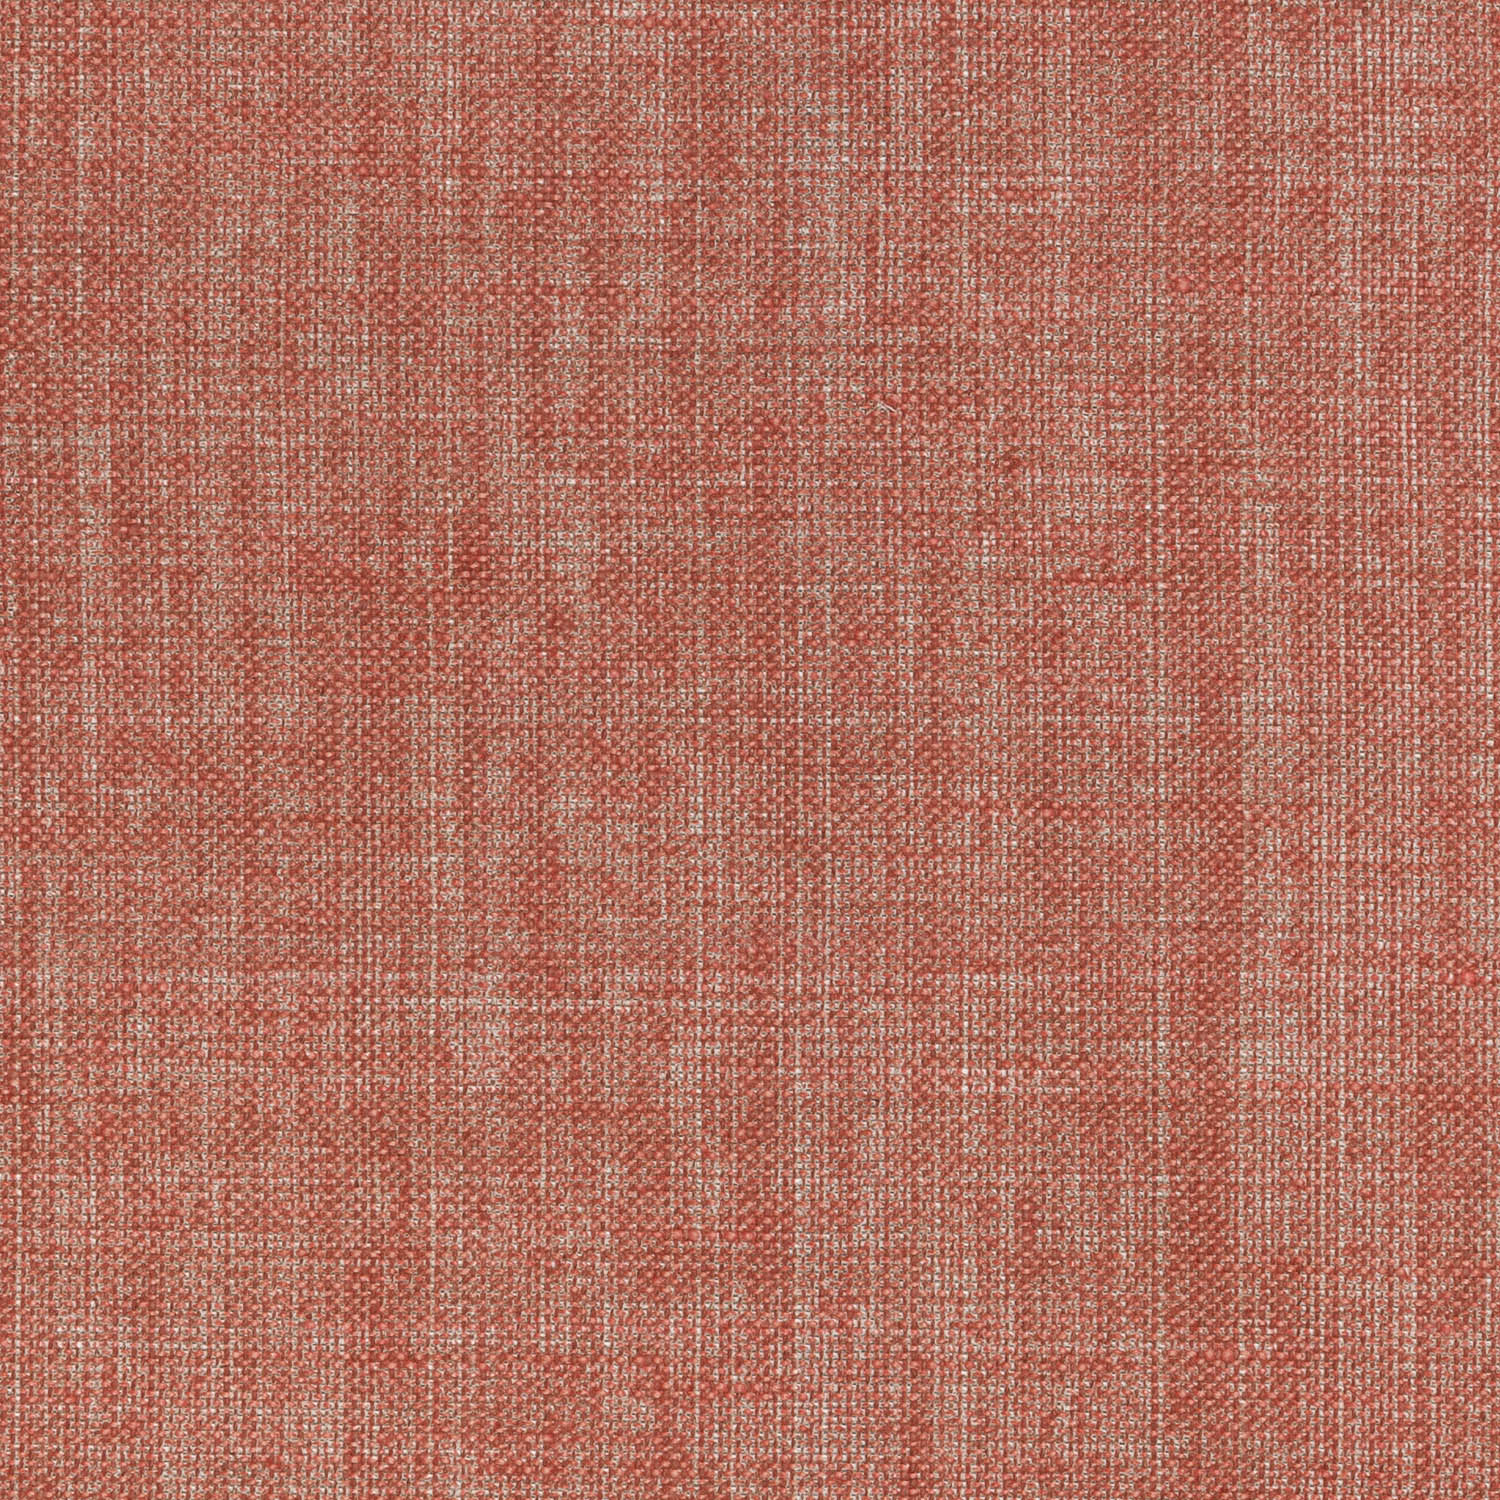 n-007-red-plain-linen-pay-attention-1